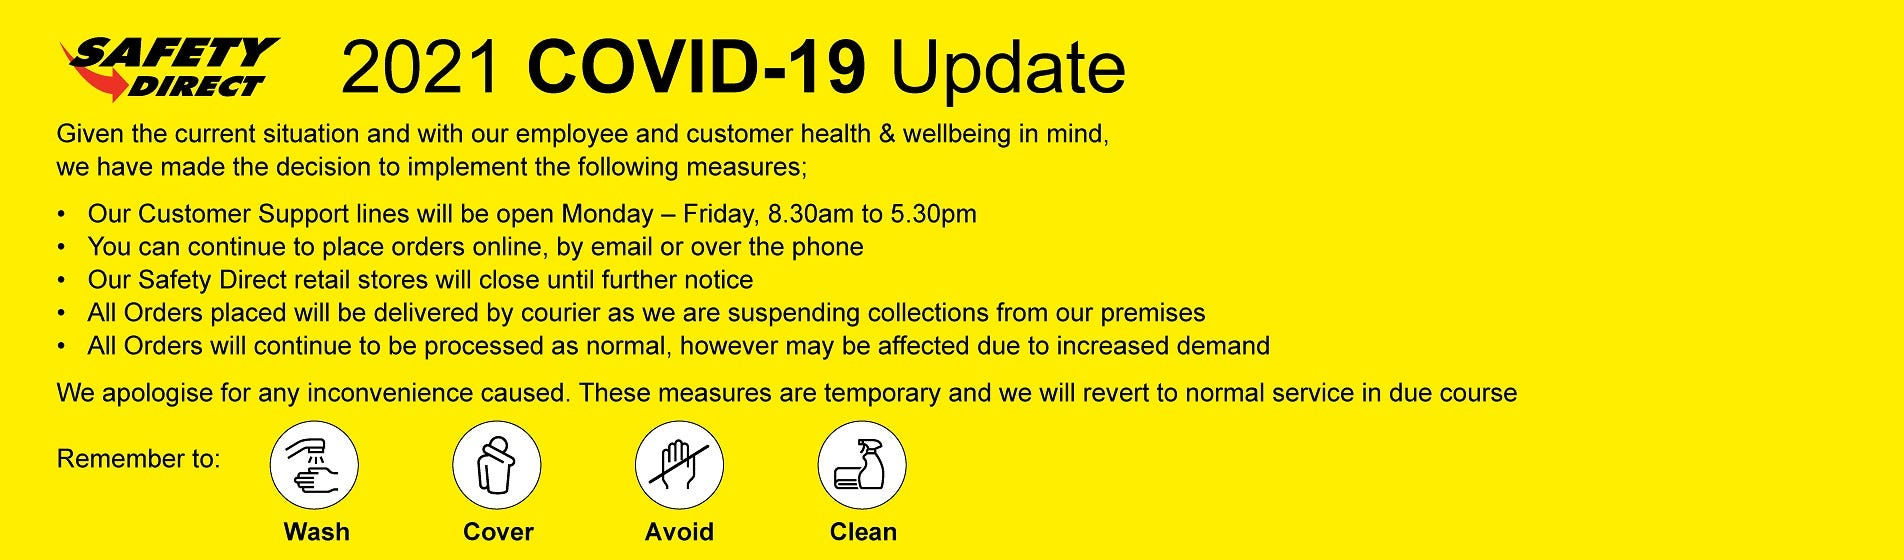 Safety Direct Retail Stores Closure Jan 2021 - Covid 19 Update